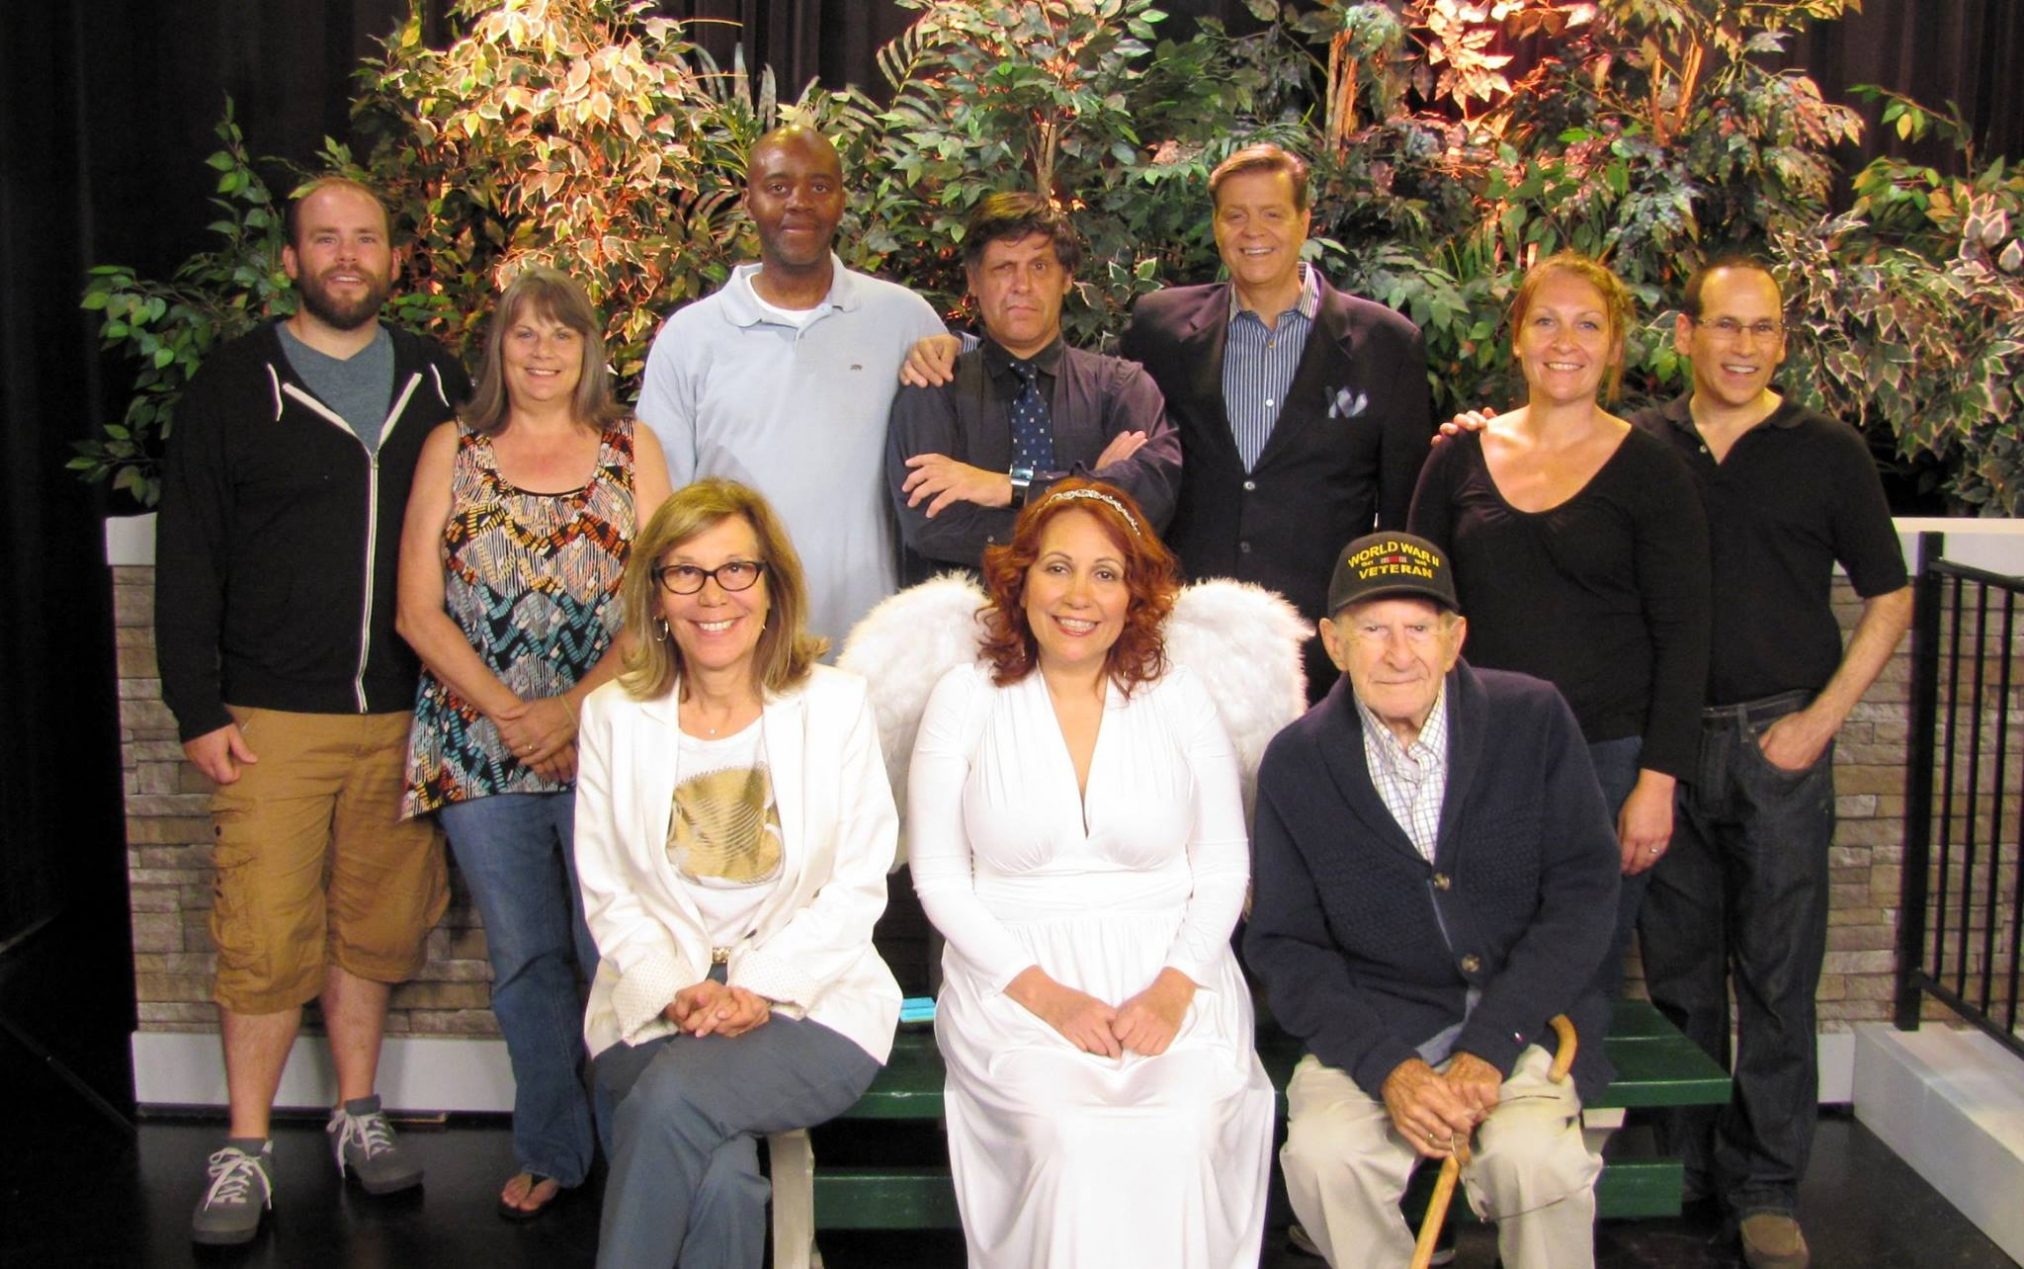 playwrights cast